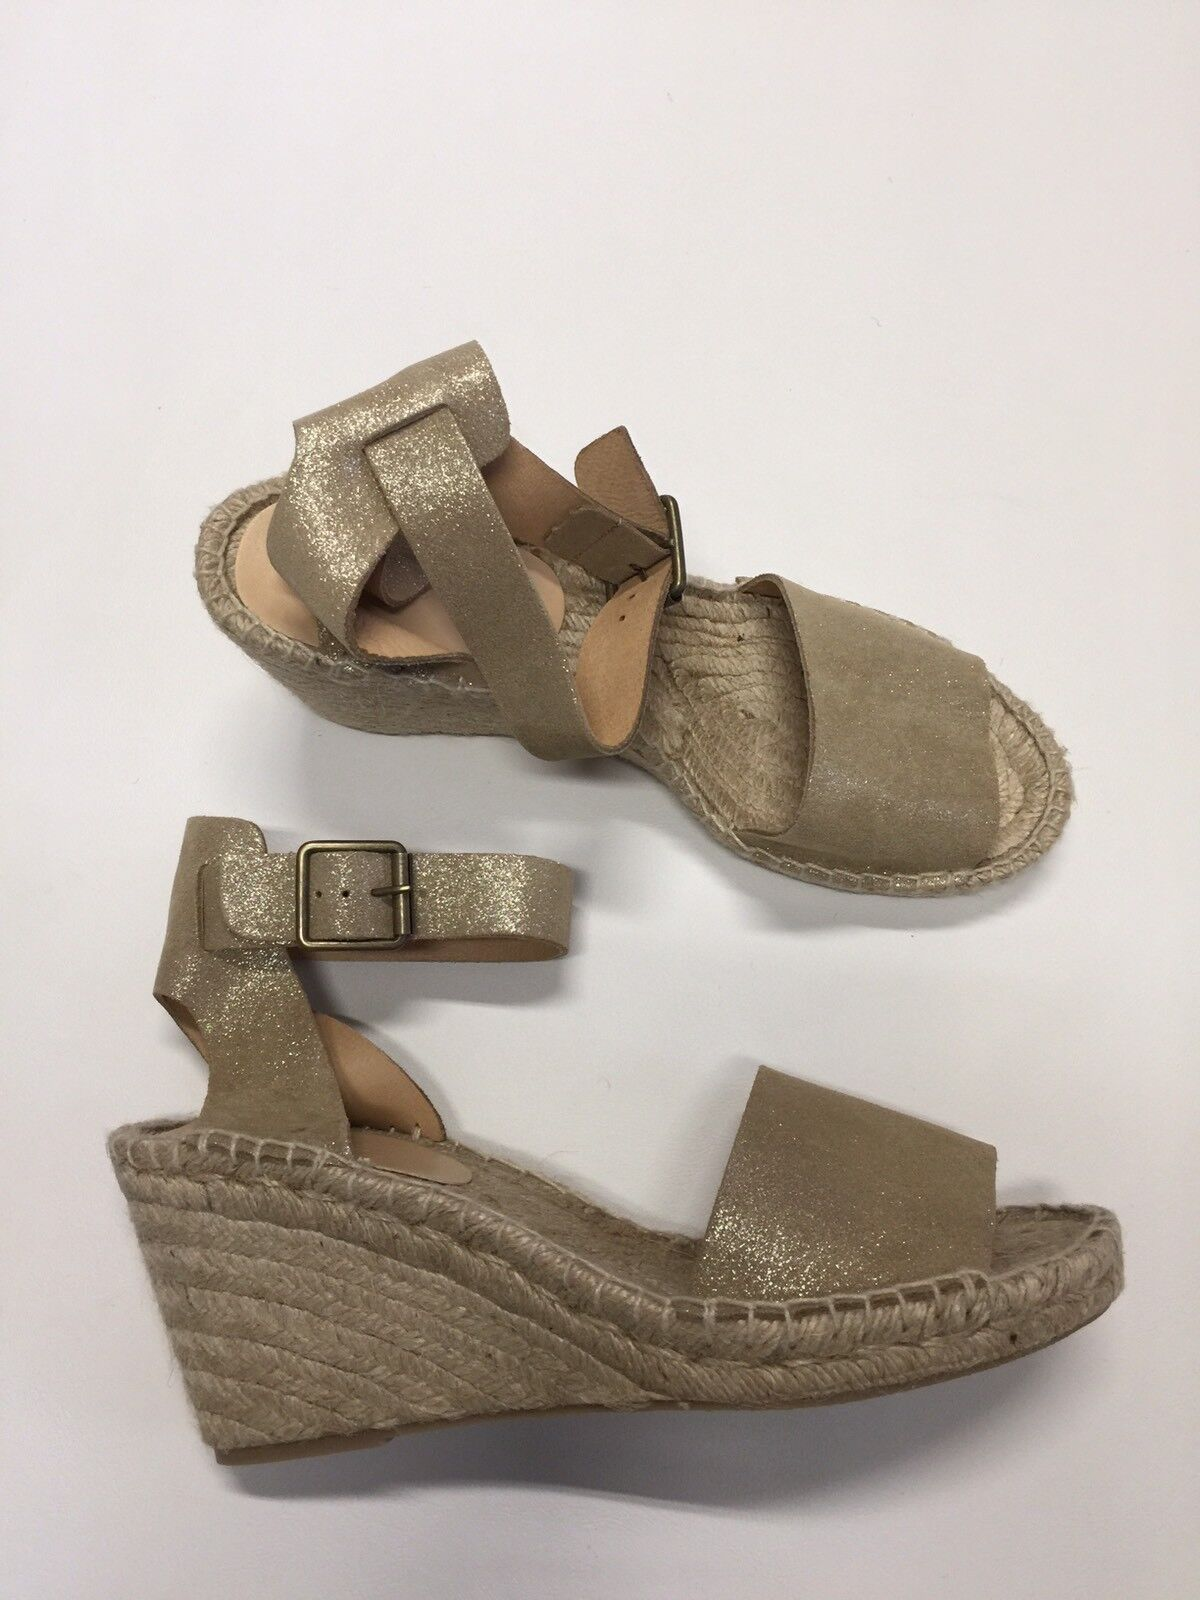 New J Crew Corsica Espadrille Wedges Metallic Suede Pale Gold Sz 10 G4198 128